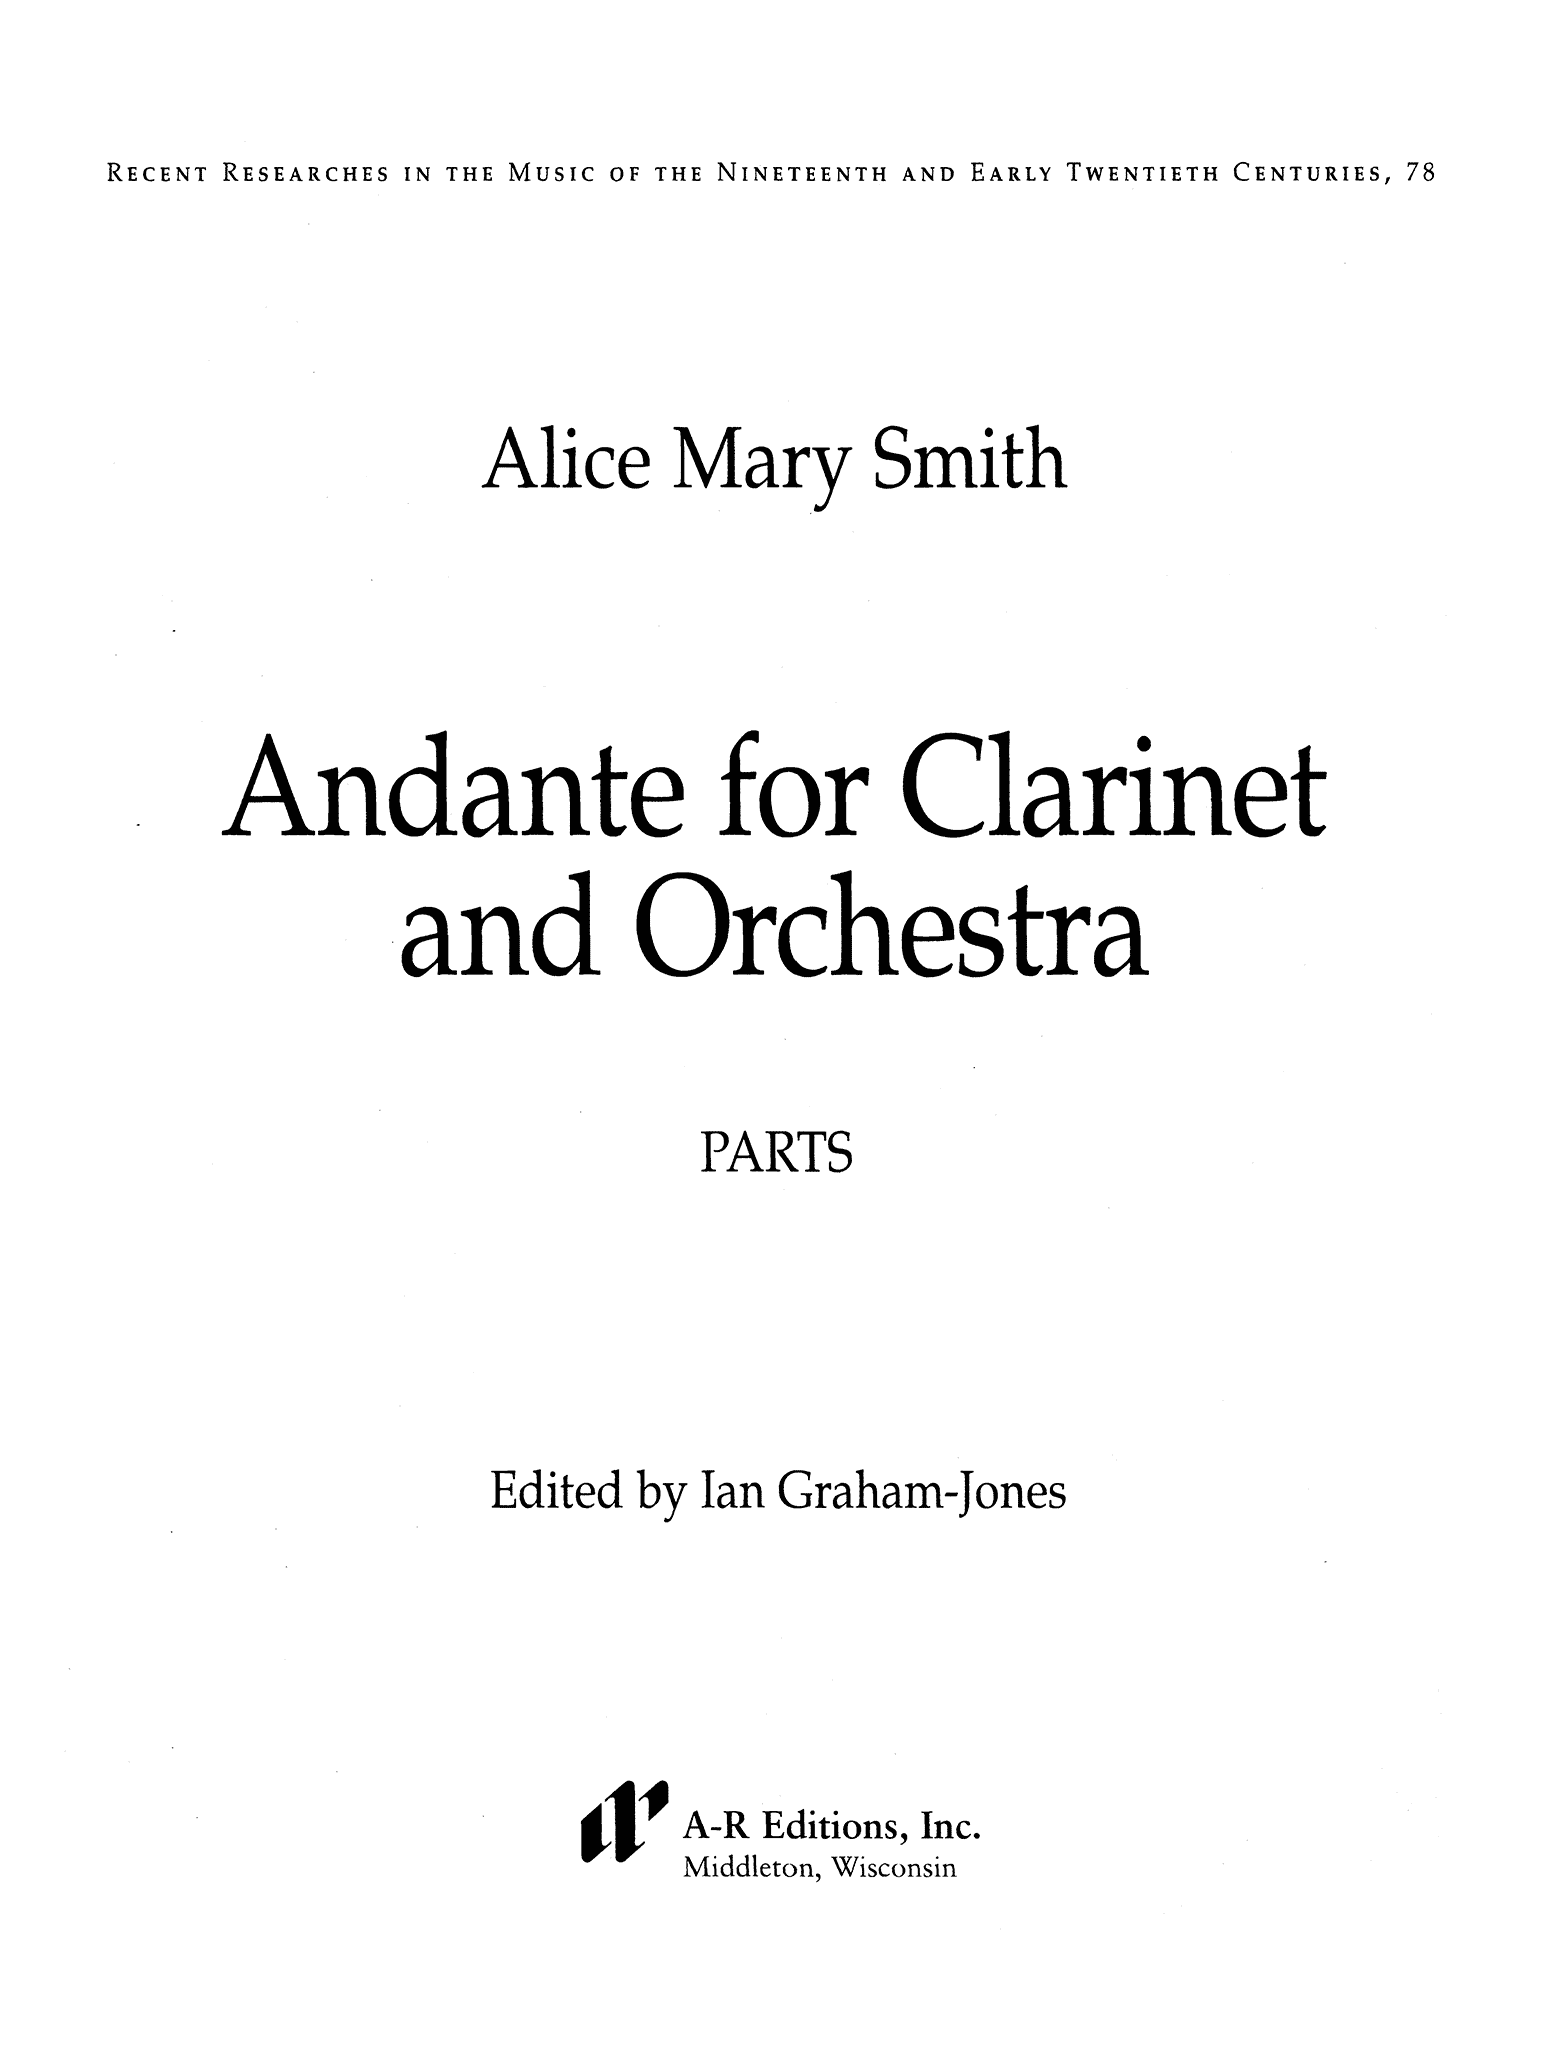 Smith Andante for Clarinet & Orchestra Cover